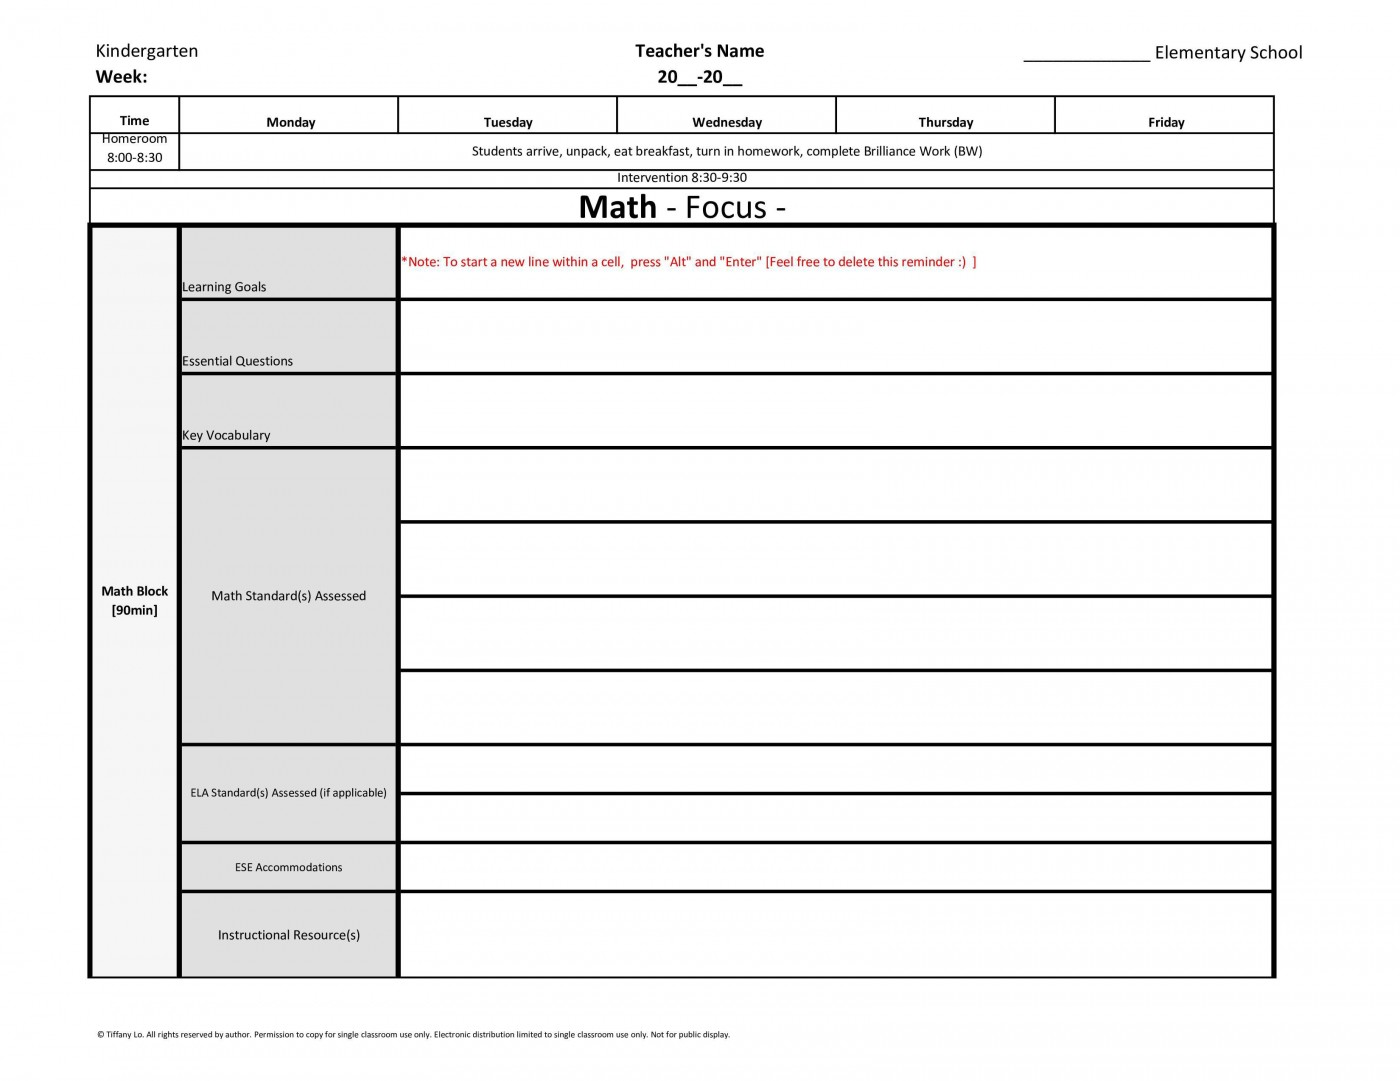 004 Unforgettable Editable Lesson Plan Template Elementary Image 1400